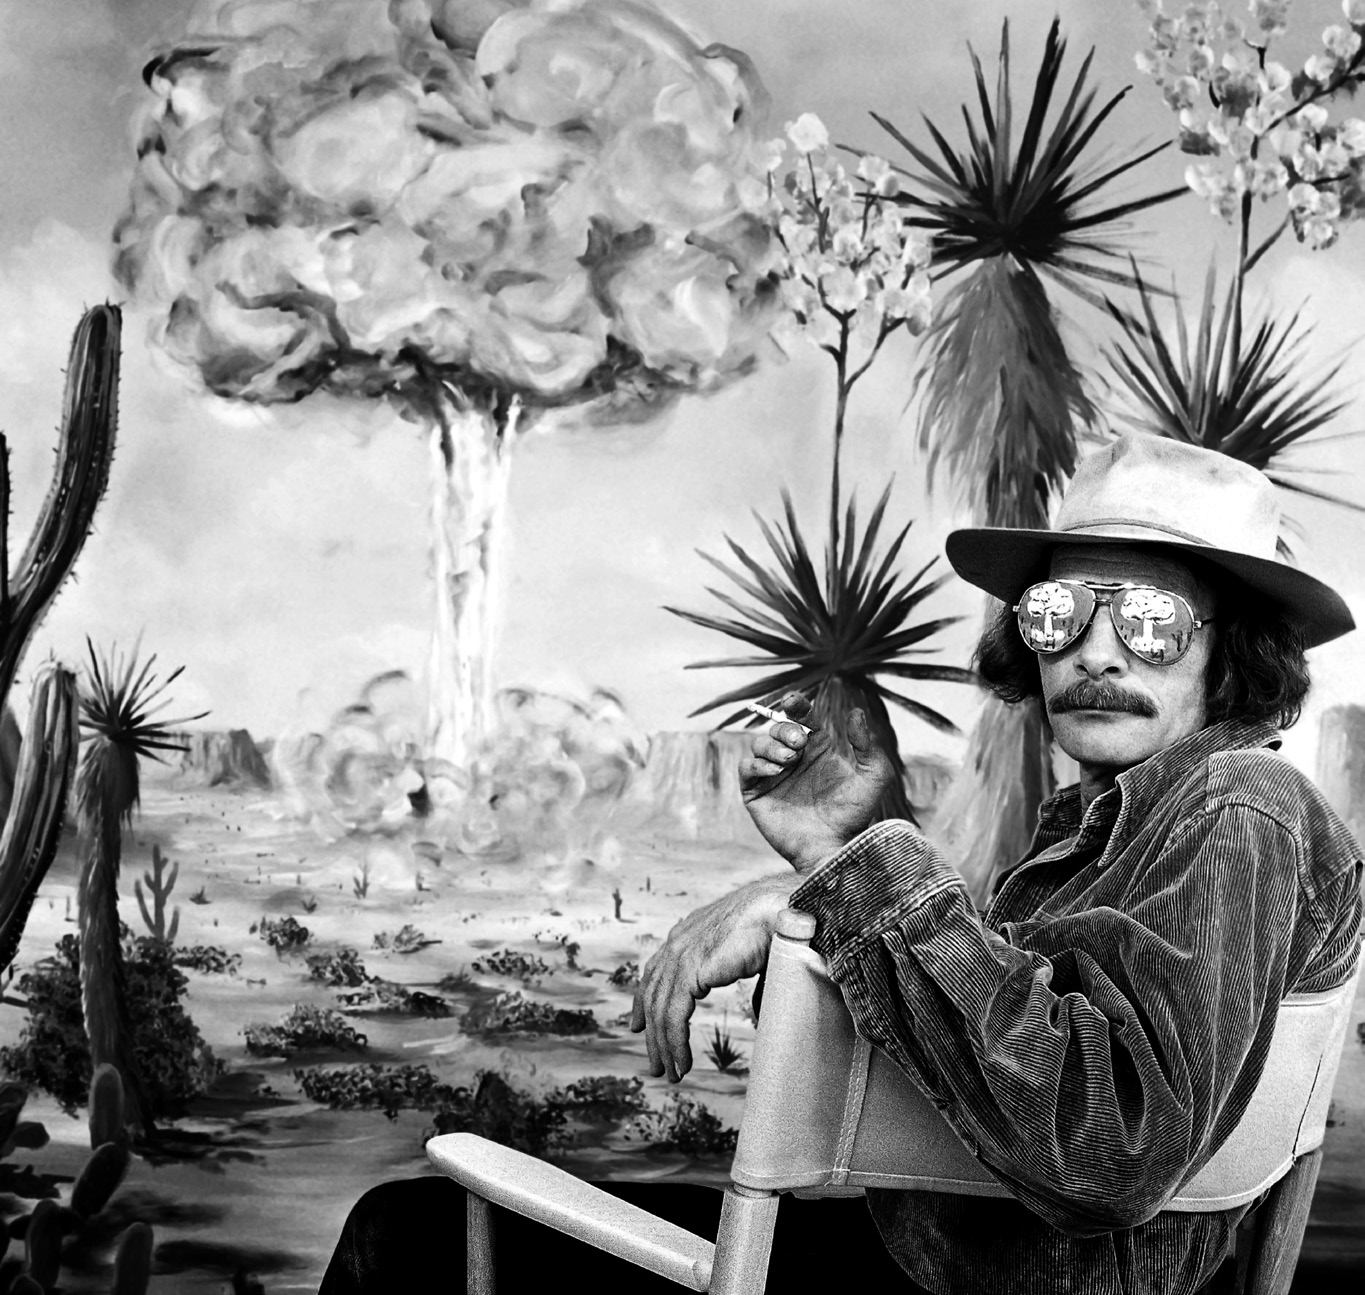 Elliott McDowell, Tony at Yucca Flats, 1982. Taken at McDowell's studio in Tesuque. Price painted the mushroom cloud on the backdrop and on his glasses. Courtesy of Elliott McDowell.